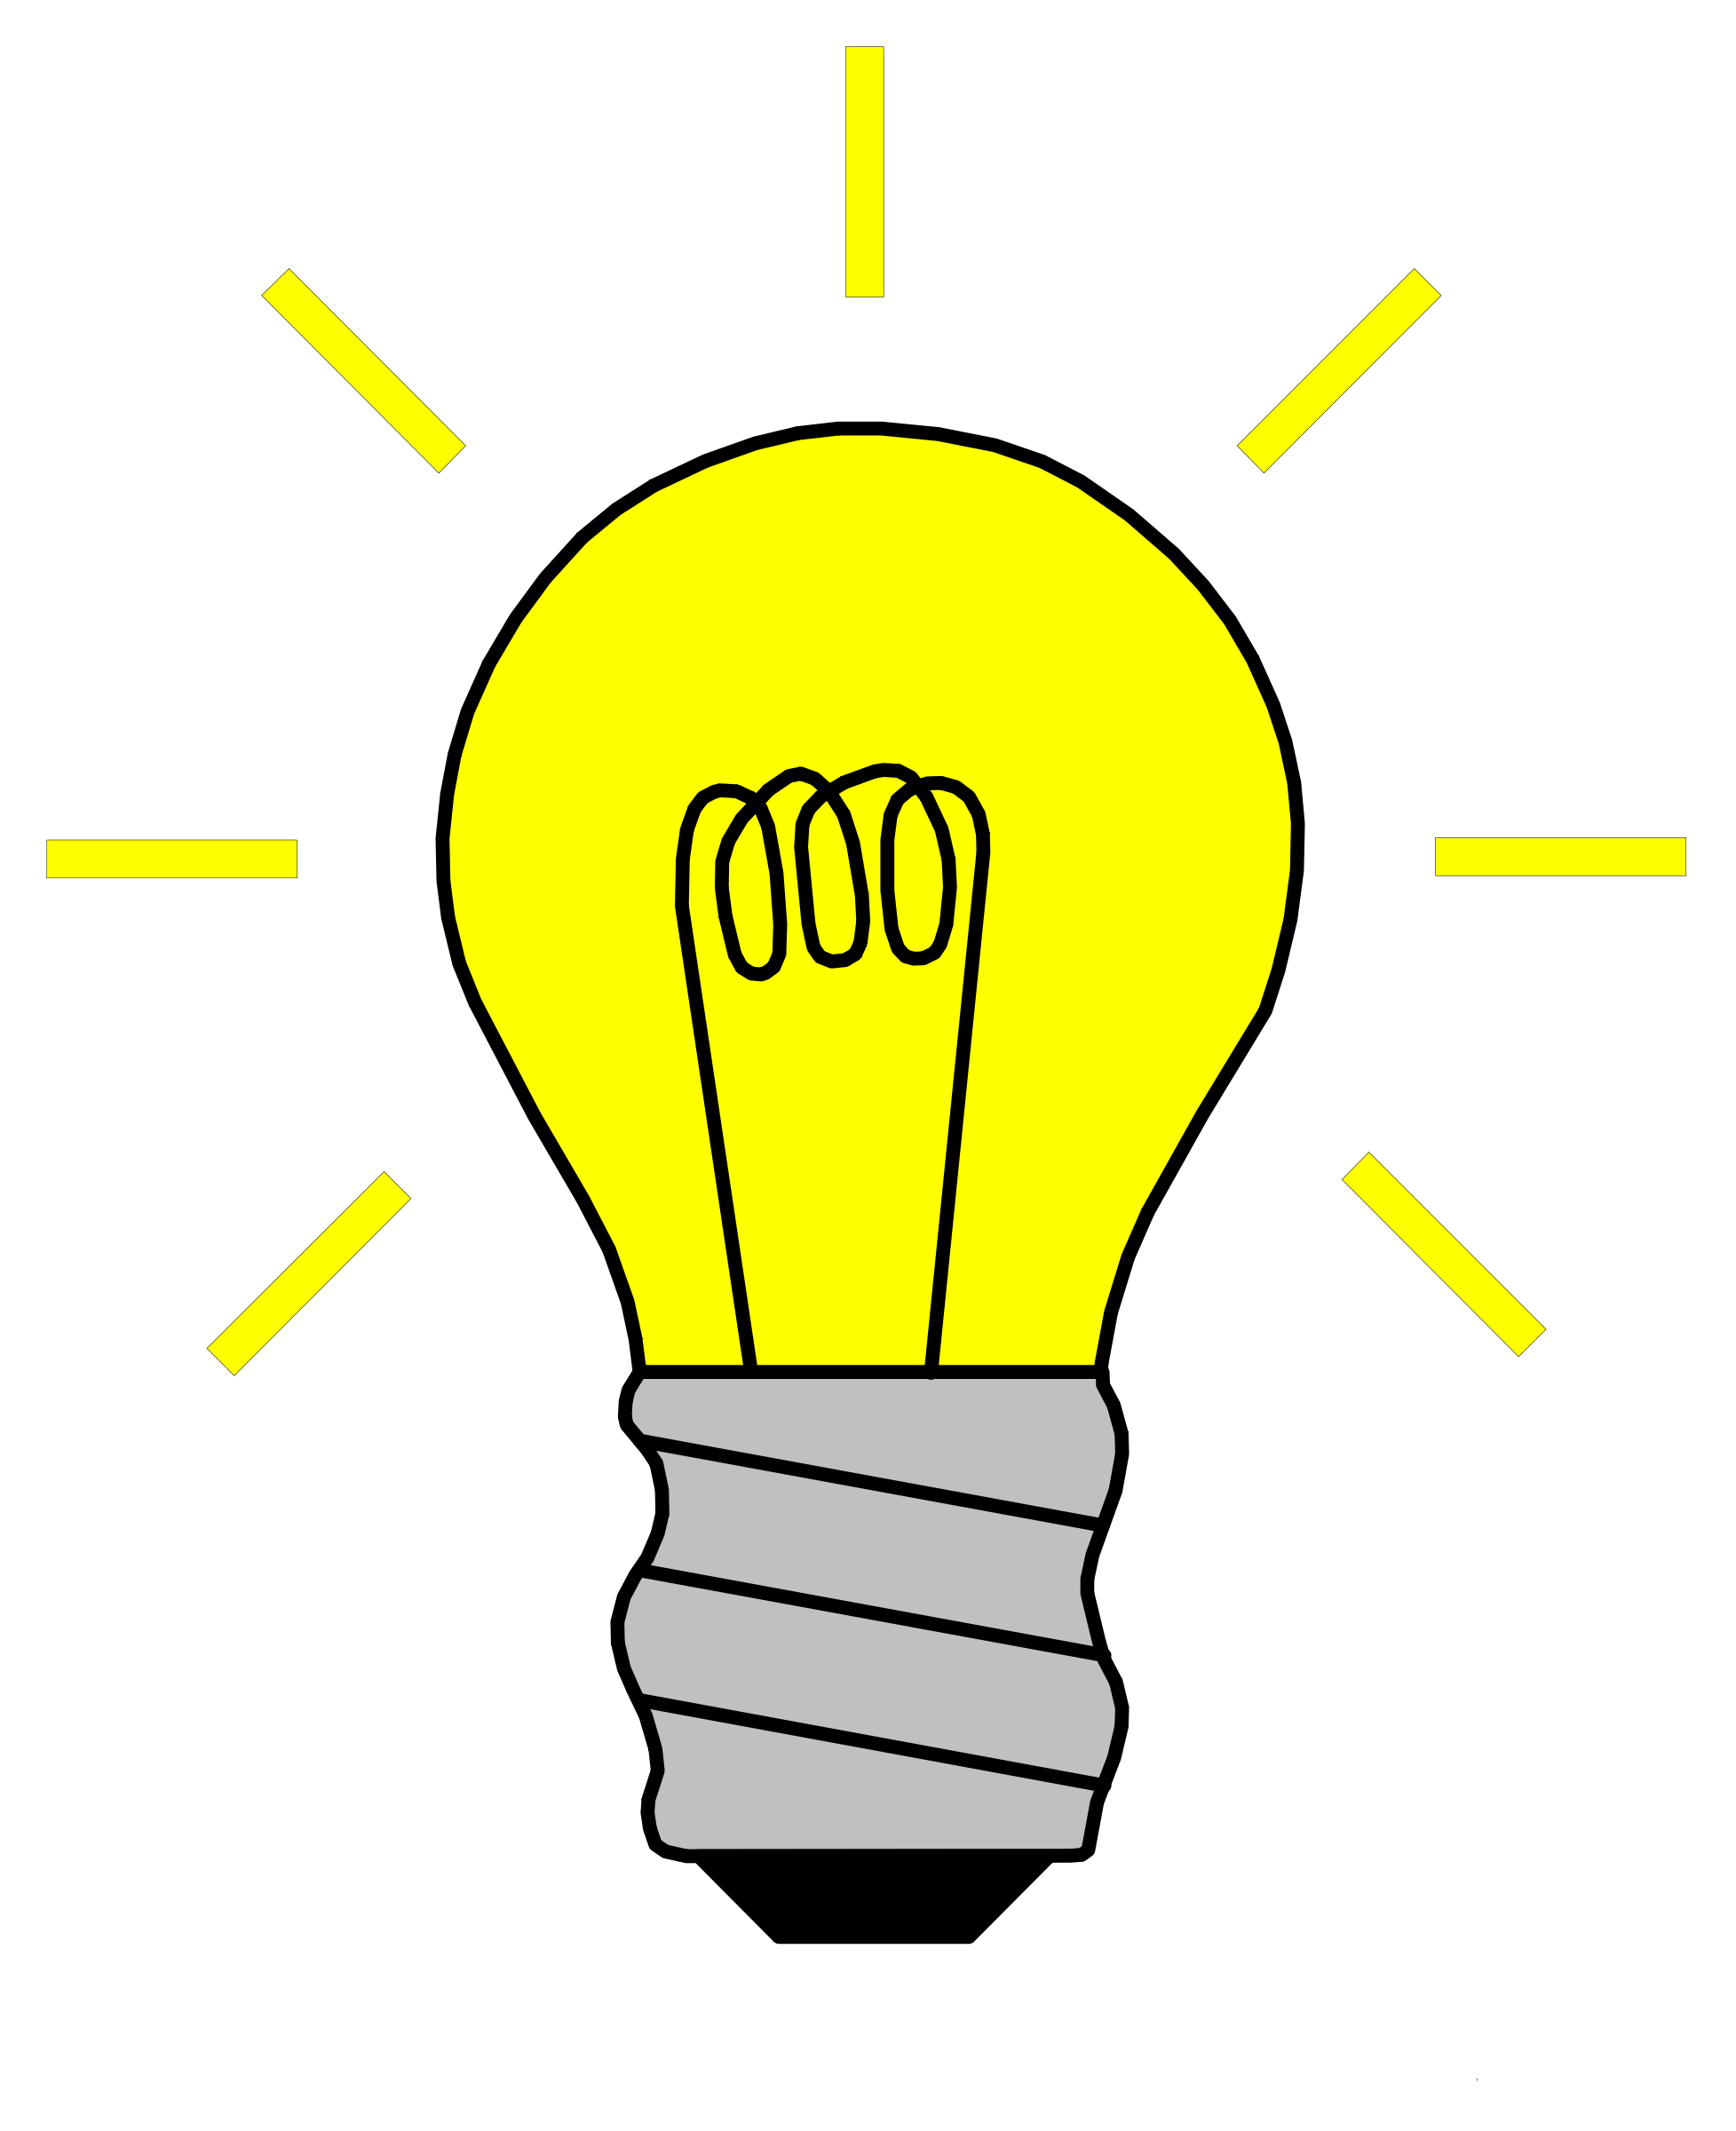 For light clipart #6